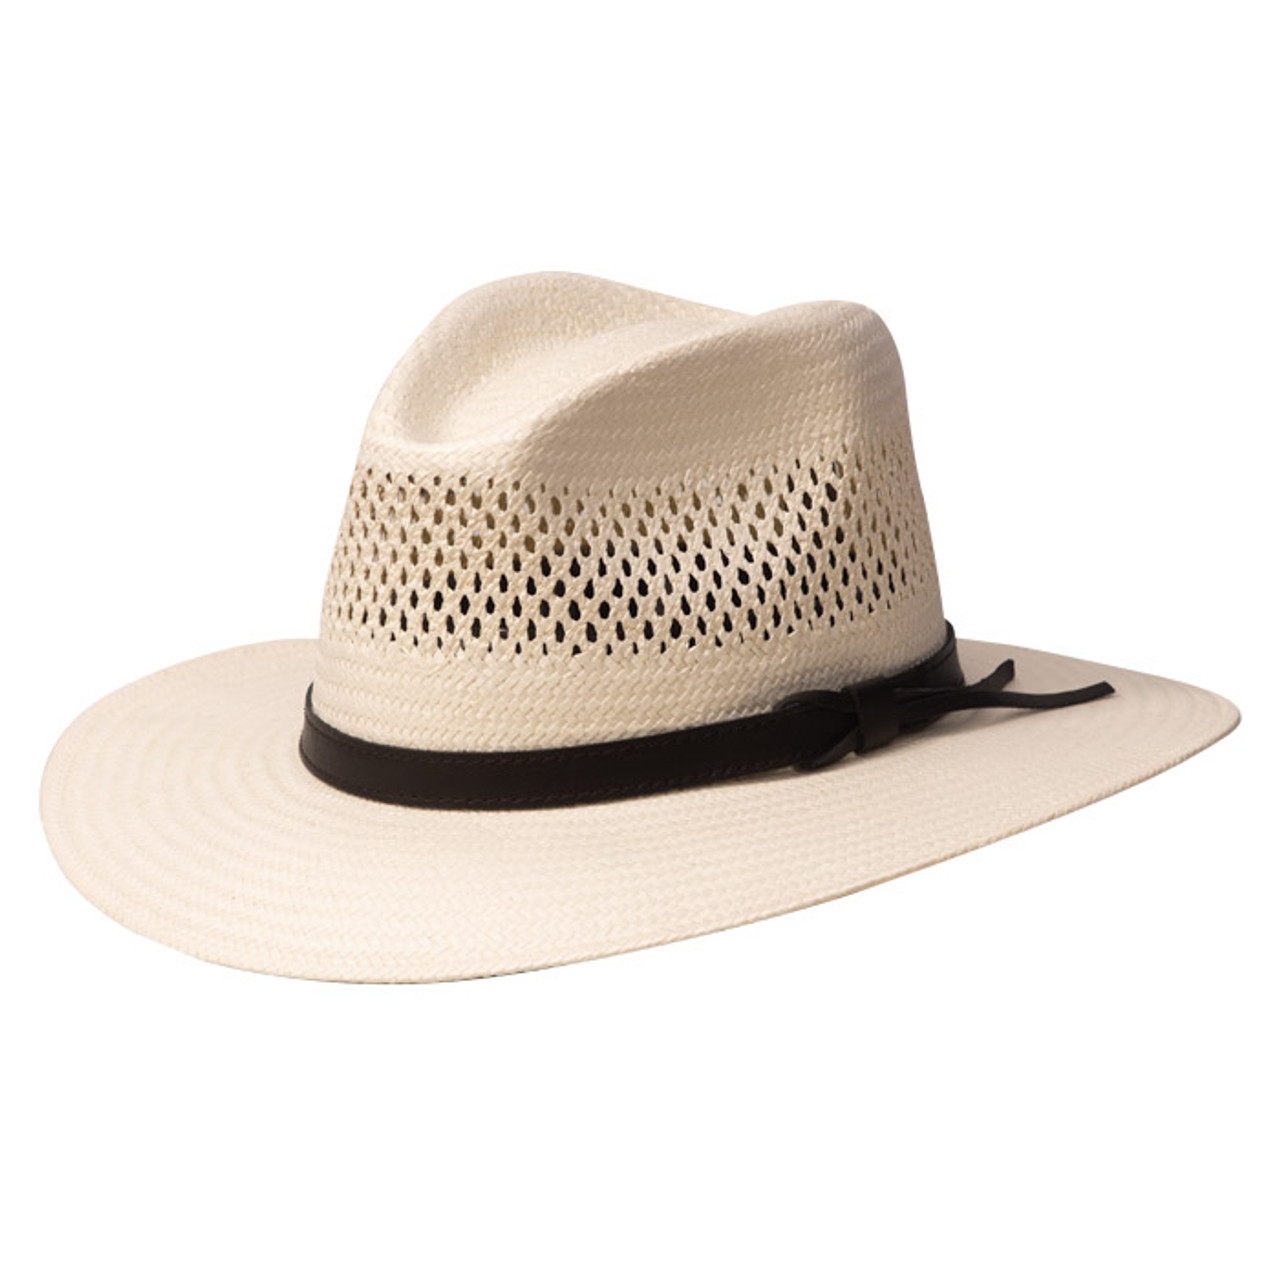 bff0f679 Stetson - Digger Shantung Straw Outback Hat